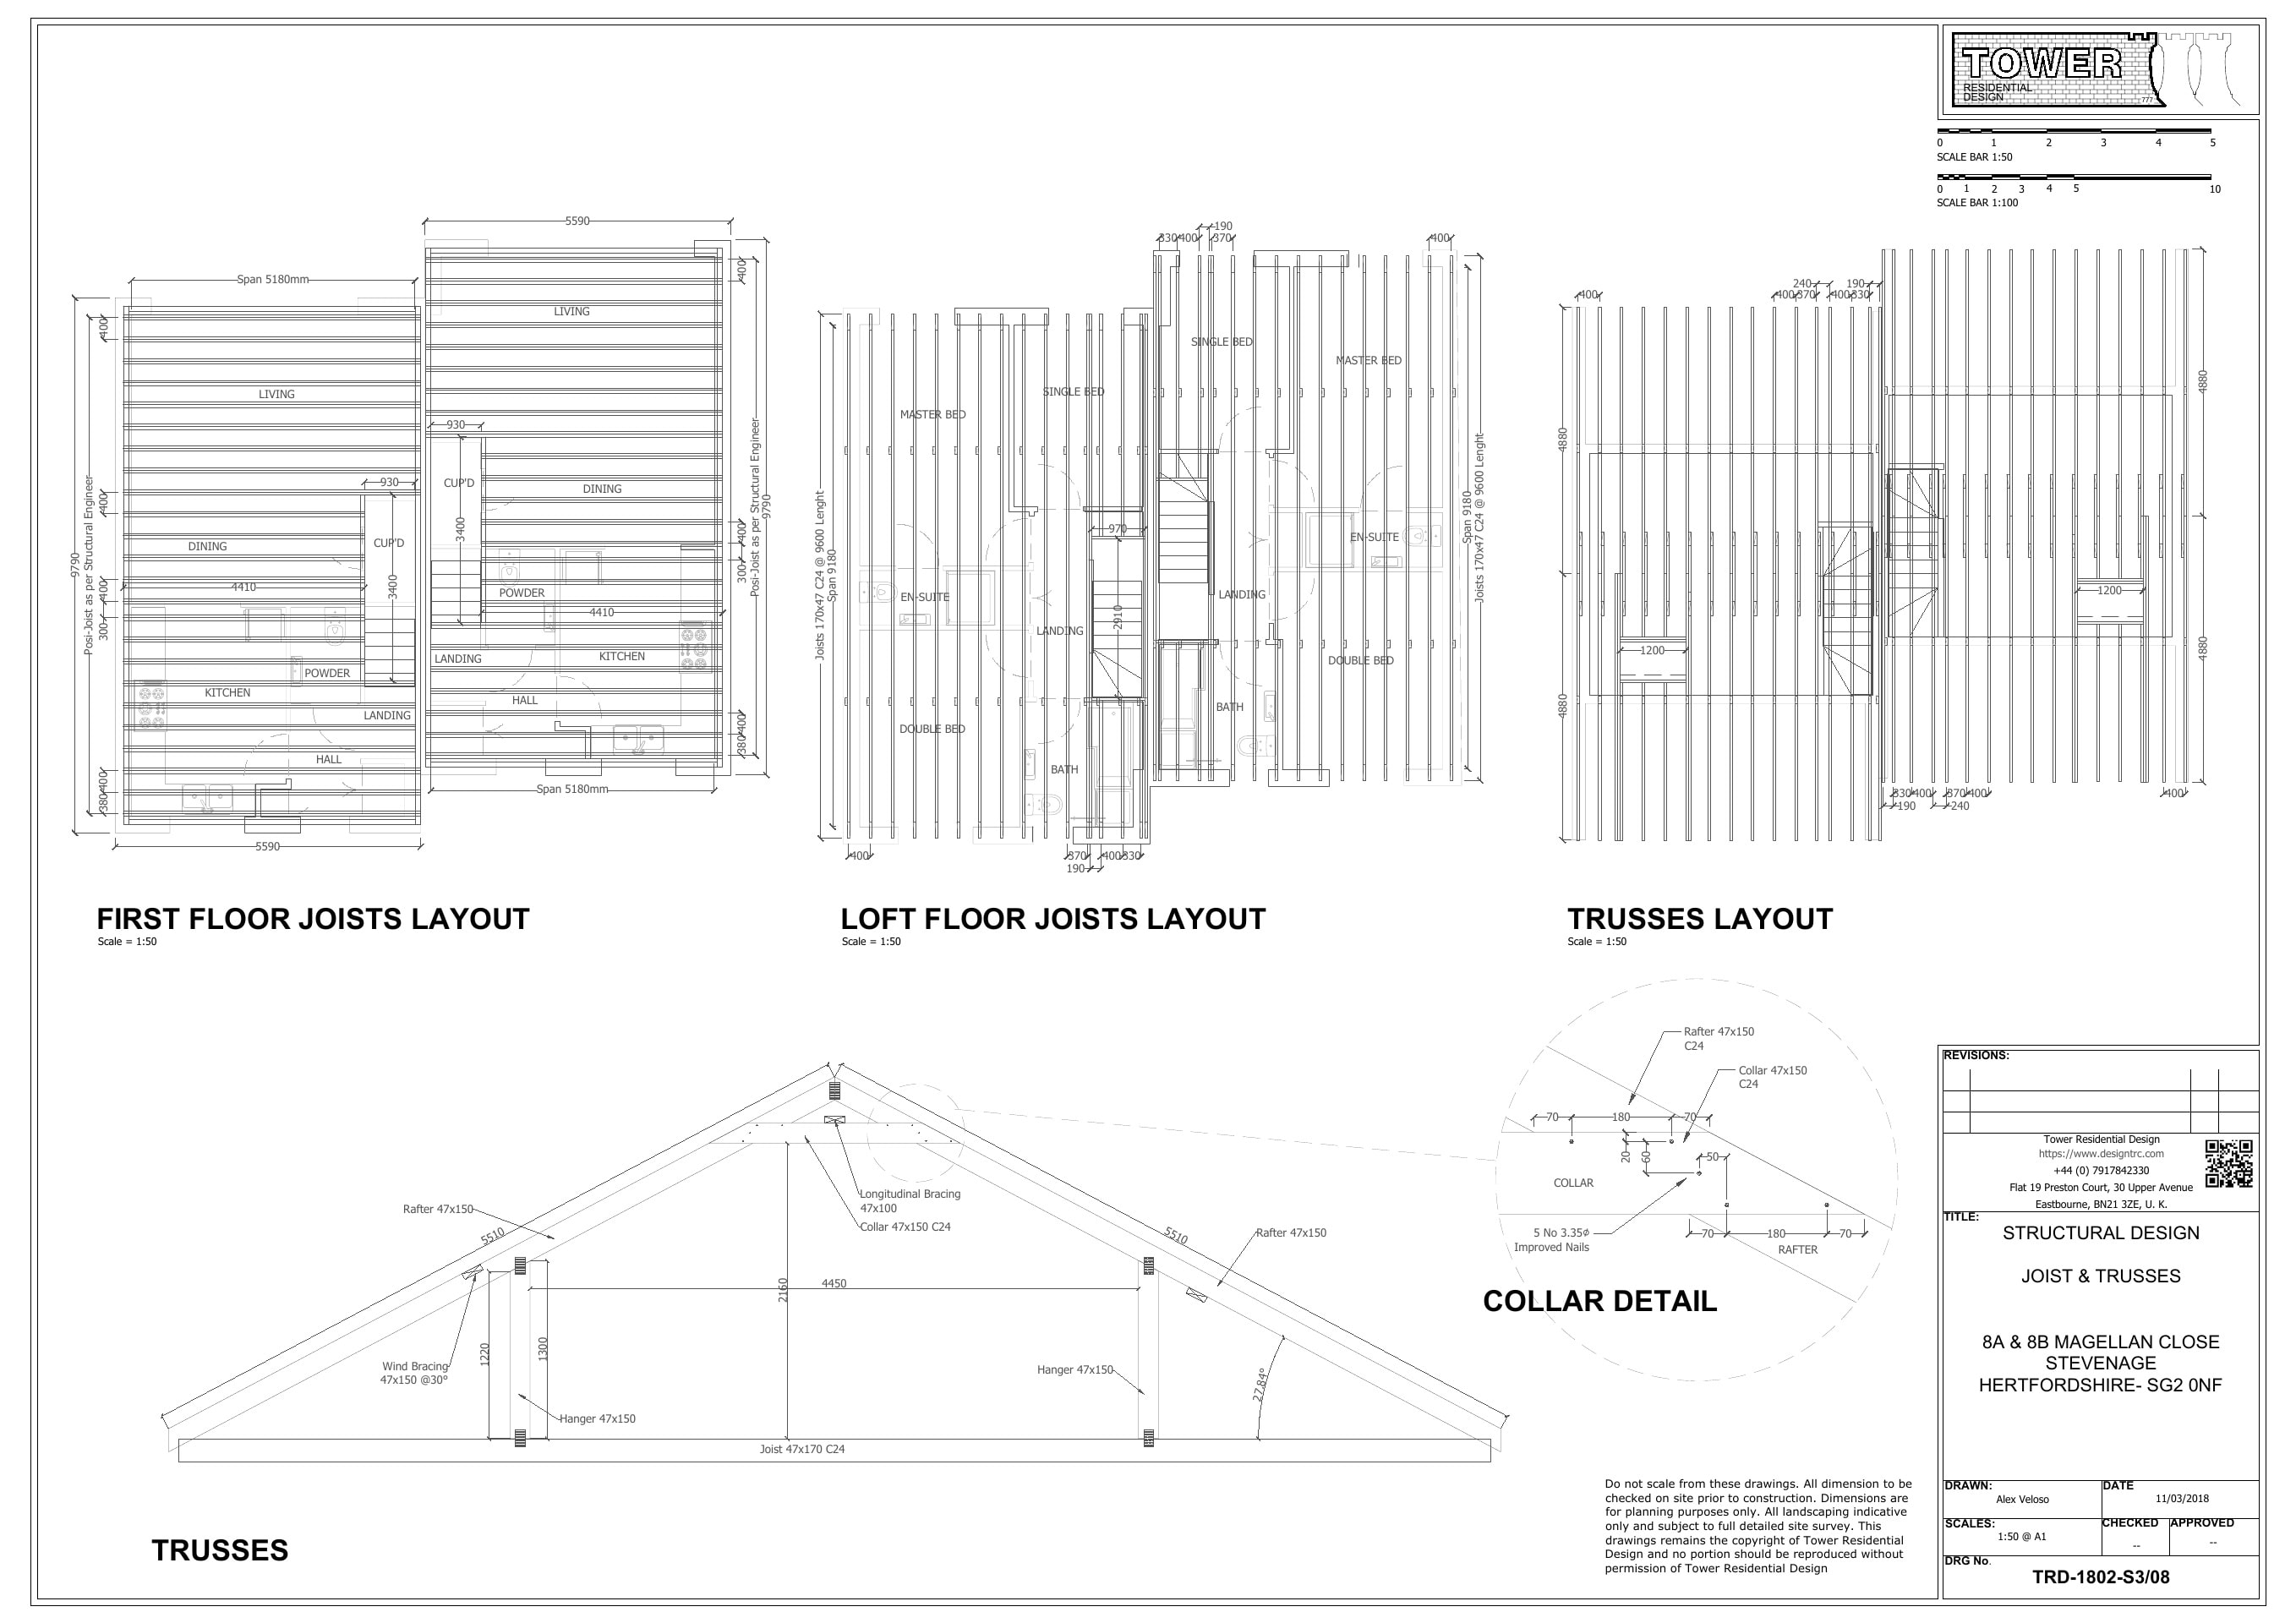 Building Regulations - Trusses and Joist Plan